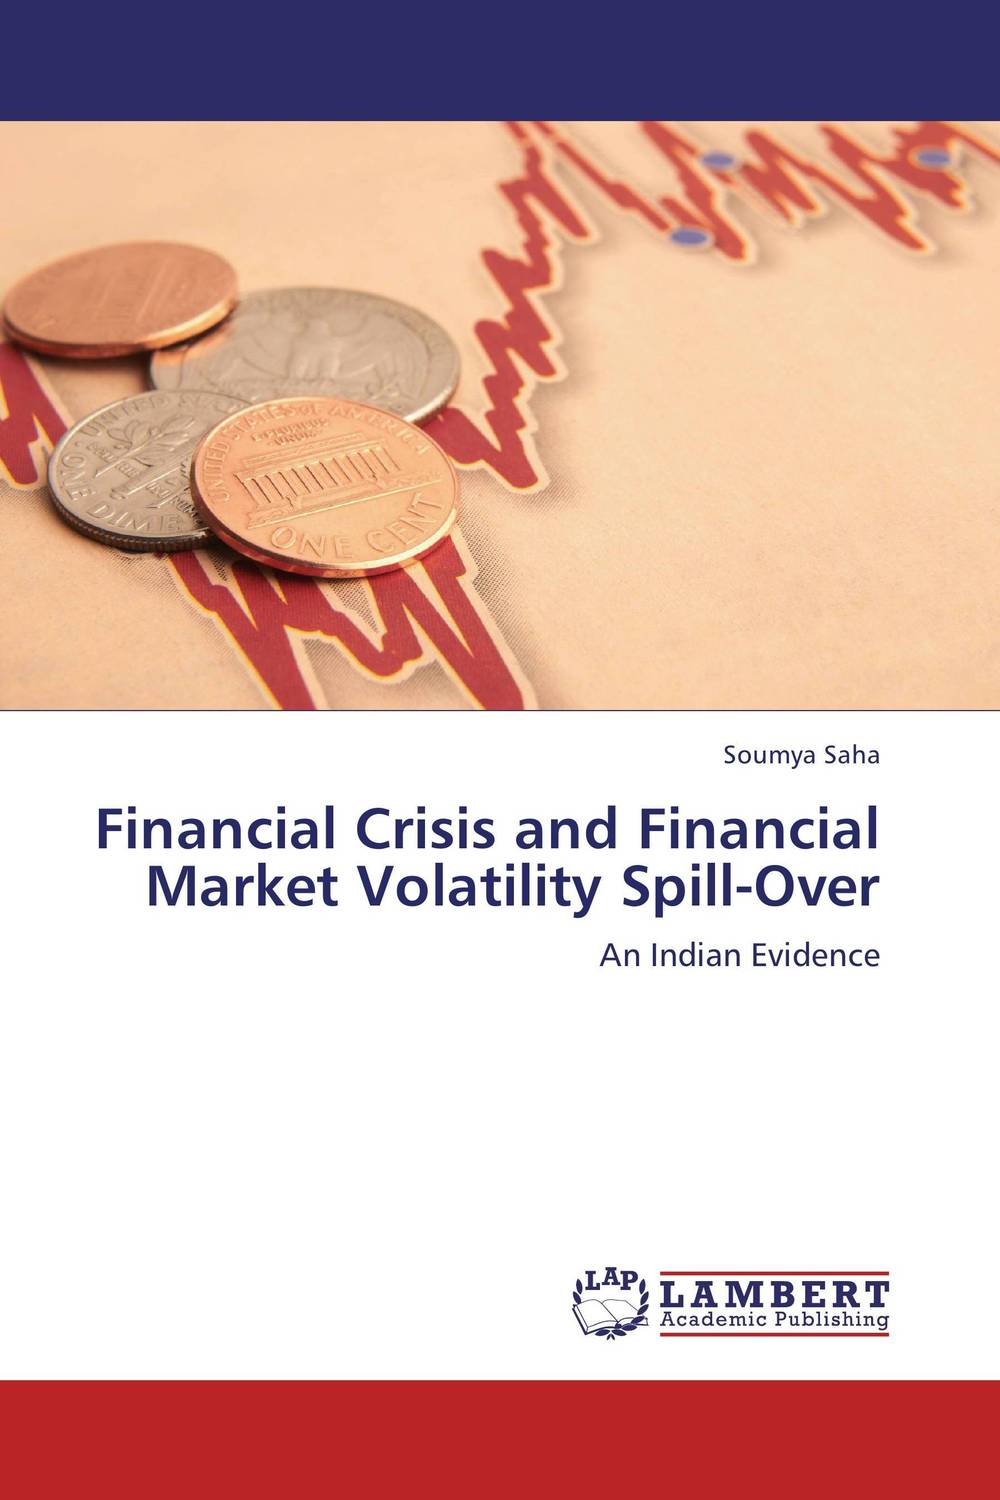 Financial Crisis and Financial Market Volatility Spill-Over silent spill – the organization of an industrial crisis